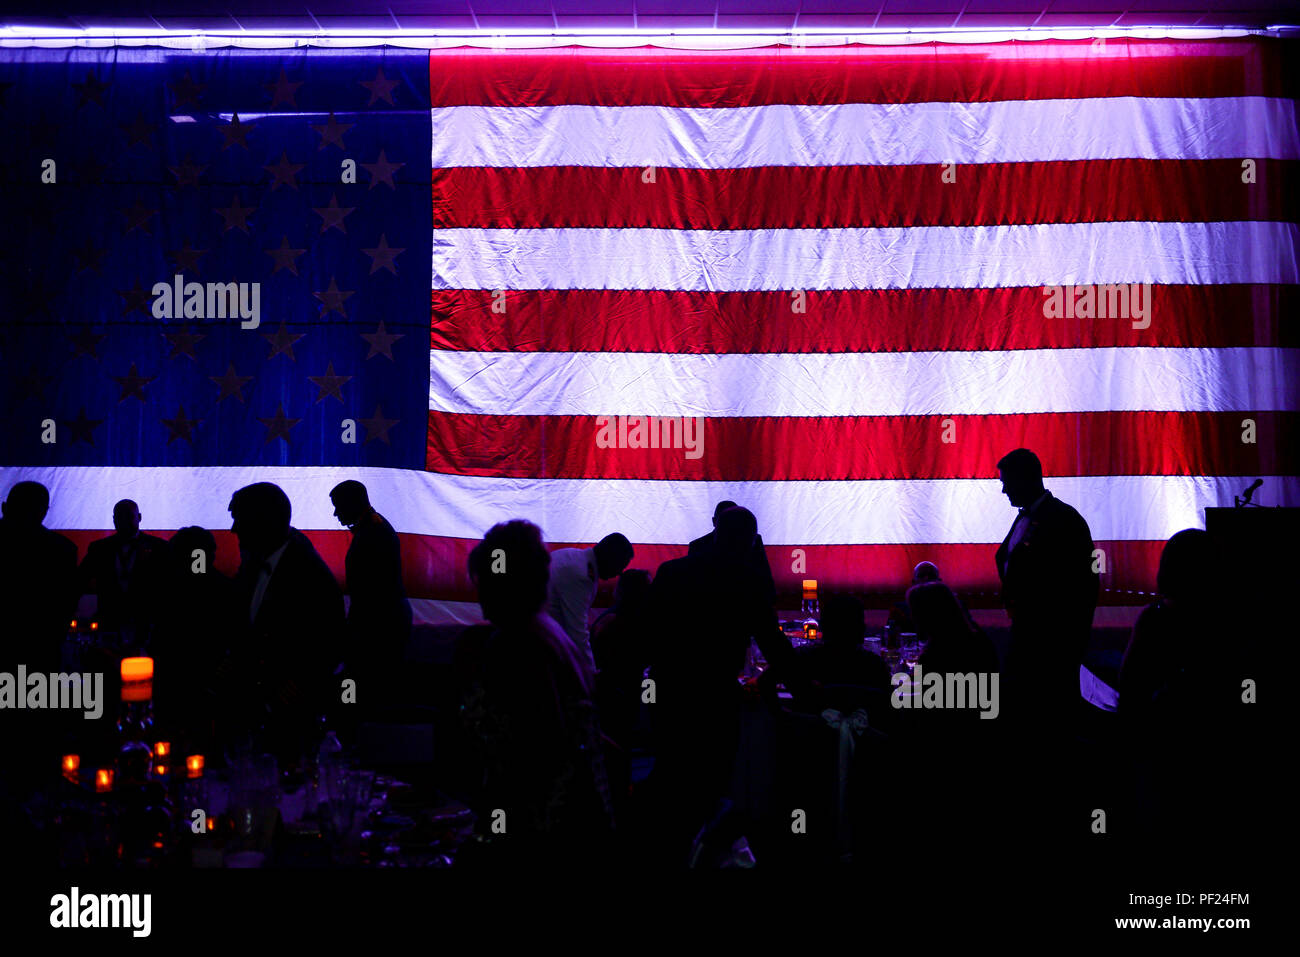 Service members at U.S. Naval Station Guantanamo Bay and Joint Task Force Guantanamo gather at the decorated Windjammer Ballroom for the 240th Marine Corps Birthday Ball. Stock Photo